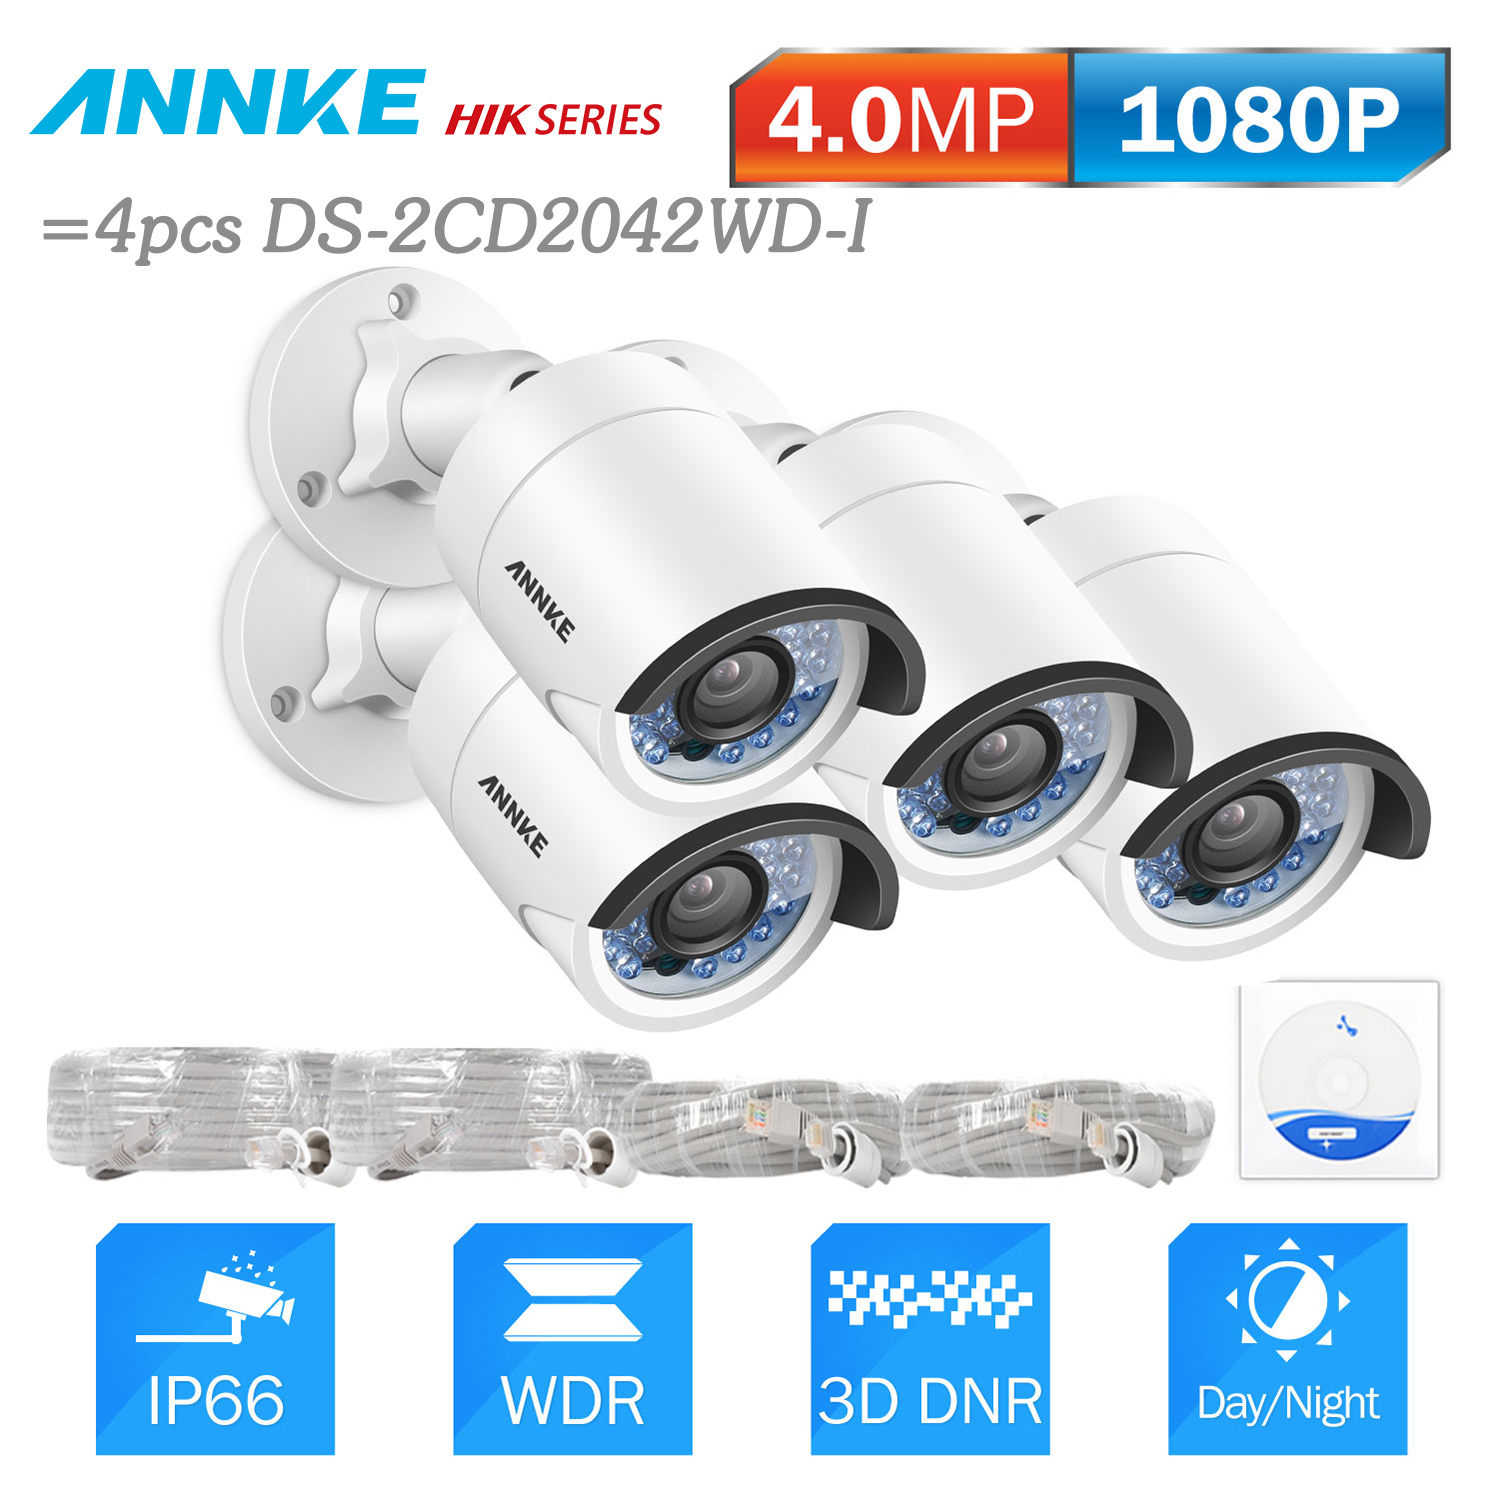 ANNKE 4pcs 4MP HD POE Security Bullet IP Camera 30m Night Vision With IP66 Weatherproof Metal Case=4pcs HIK DS-2CD2042WD-I 10pcs lot multi language hik ip camera ds 2cd2345 i replace ds 2cd2335 i 4mp poe 1080p ir night vision cctv security ip camera